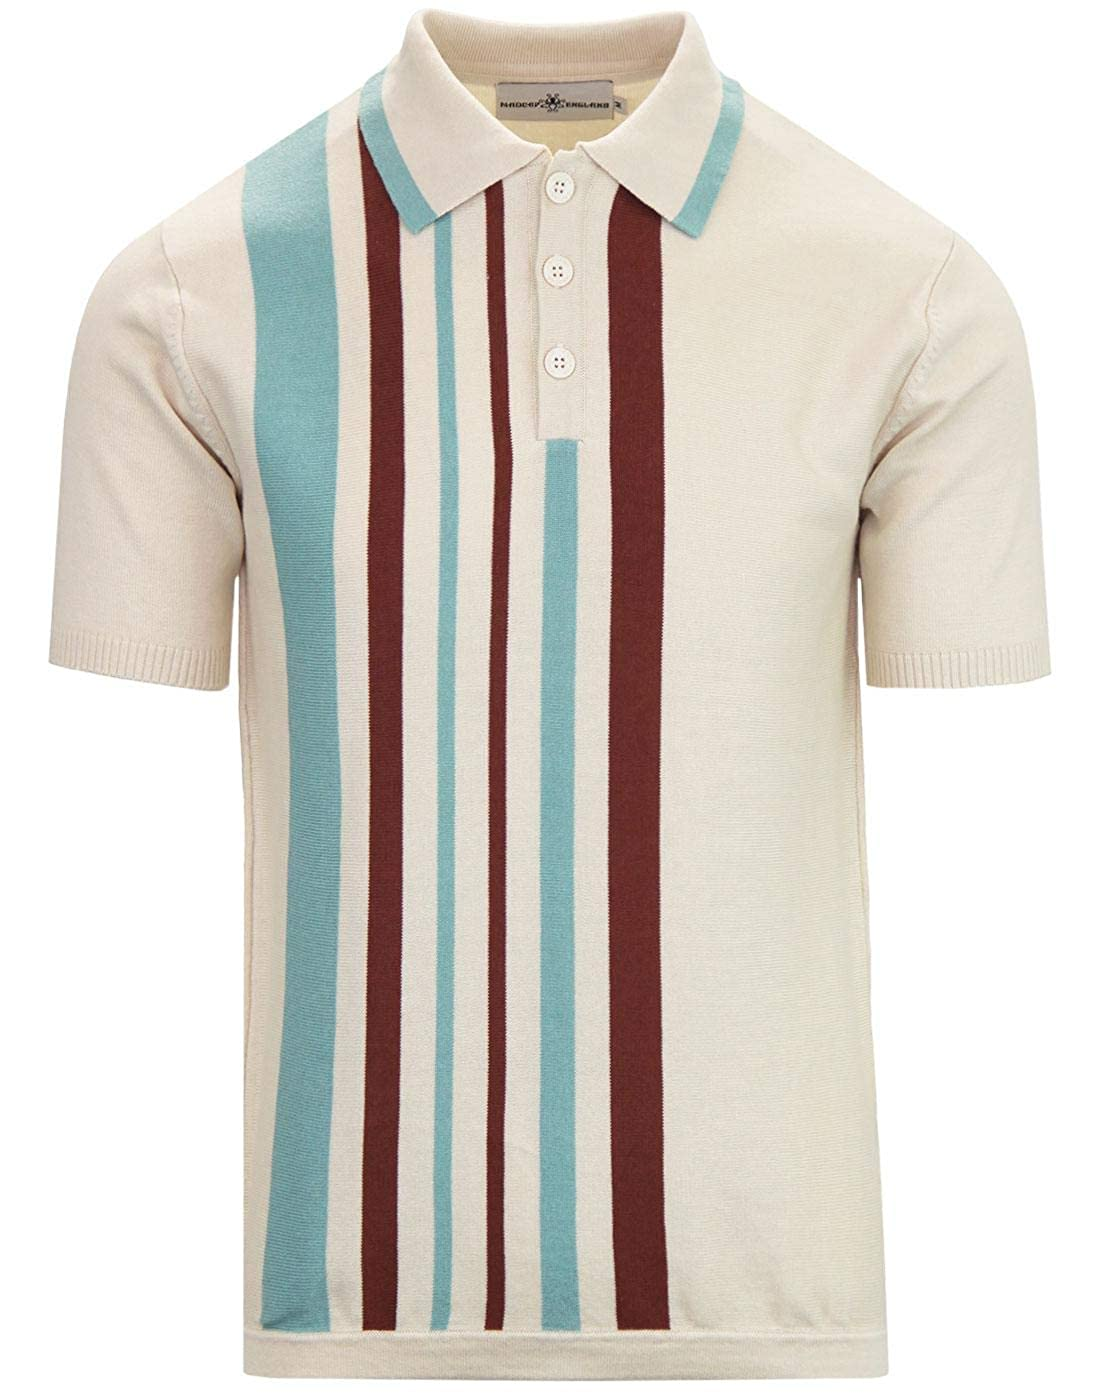 1960s – 70s Mens Shirts- Disco Shirts, Hippie Shirts Madcap England Bauhaus Mens Mod 50s 60s Style Knitted Polo Shirt �34.99 AT vintagedancer.com